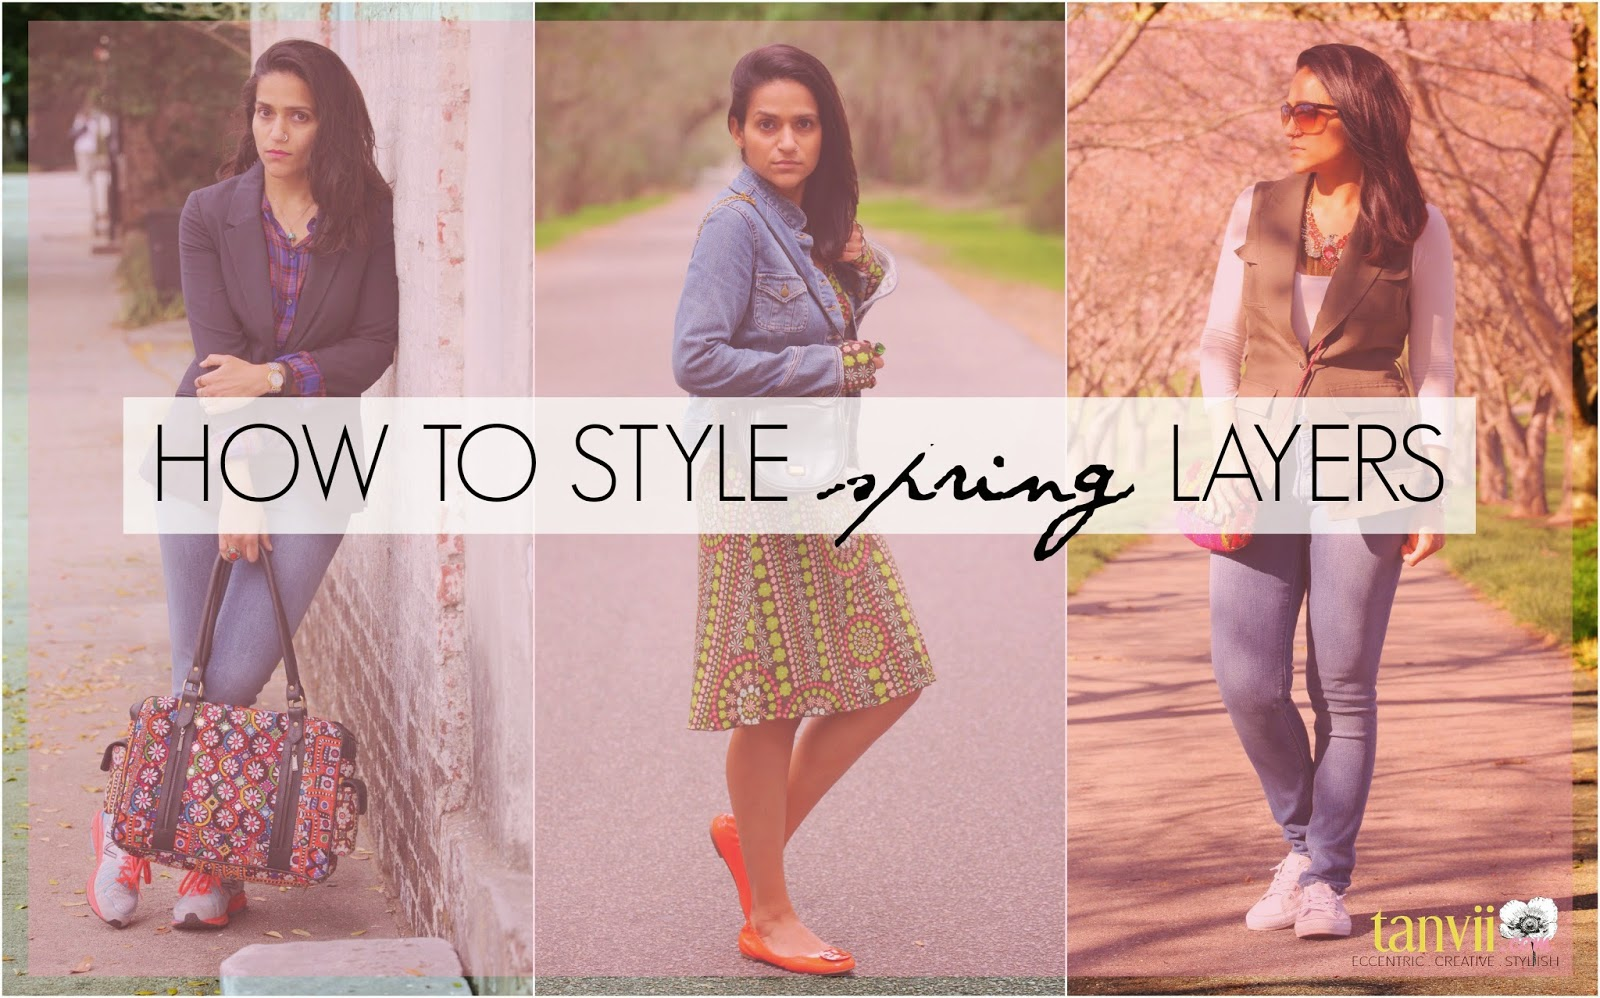 How To Style Spring Layers, Tanvii.com